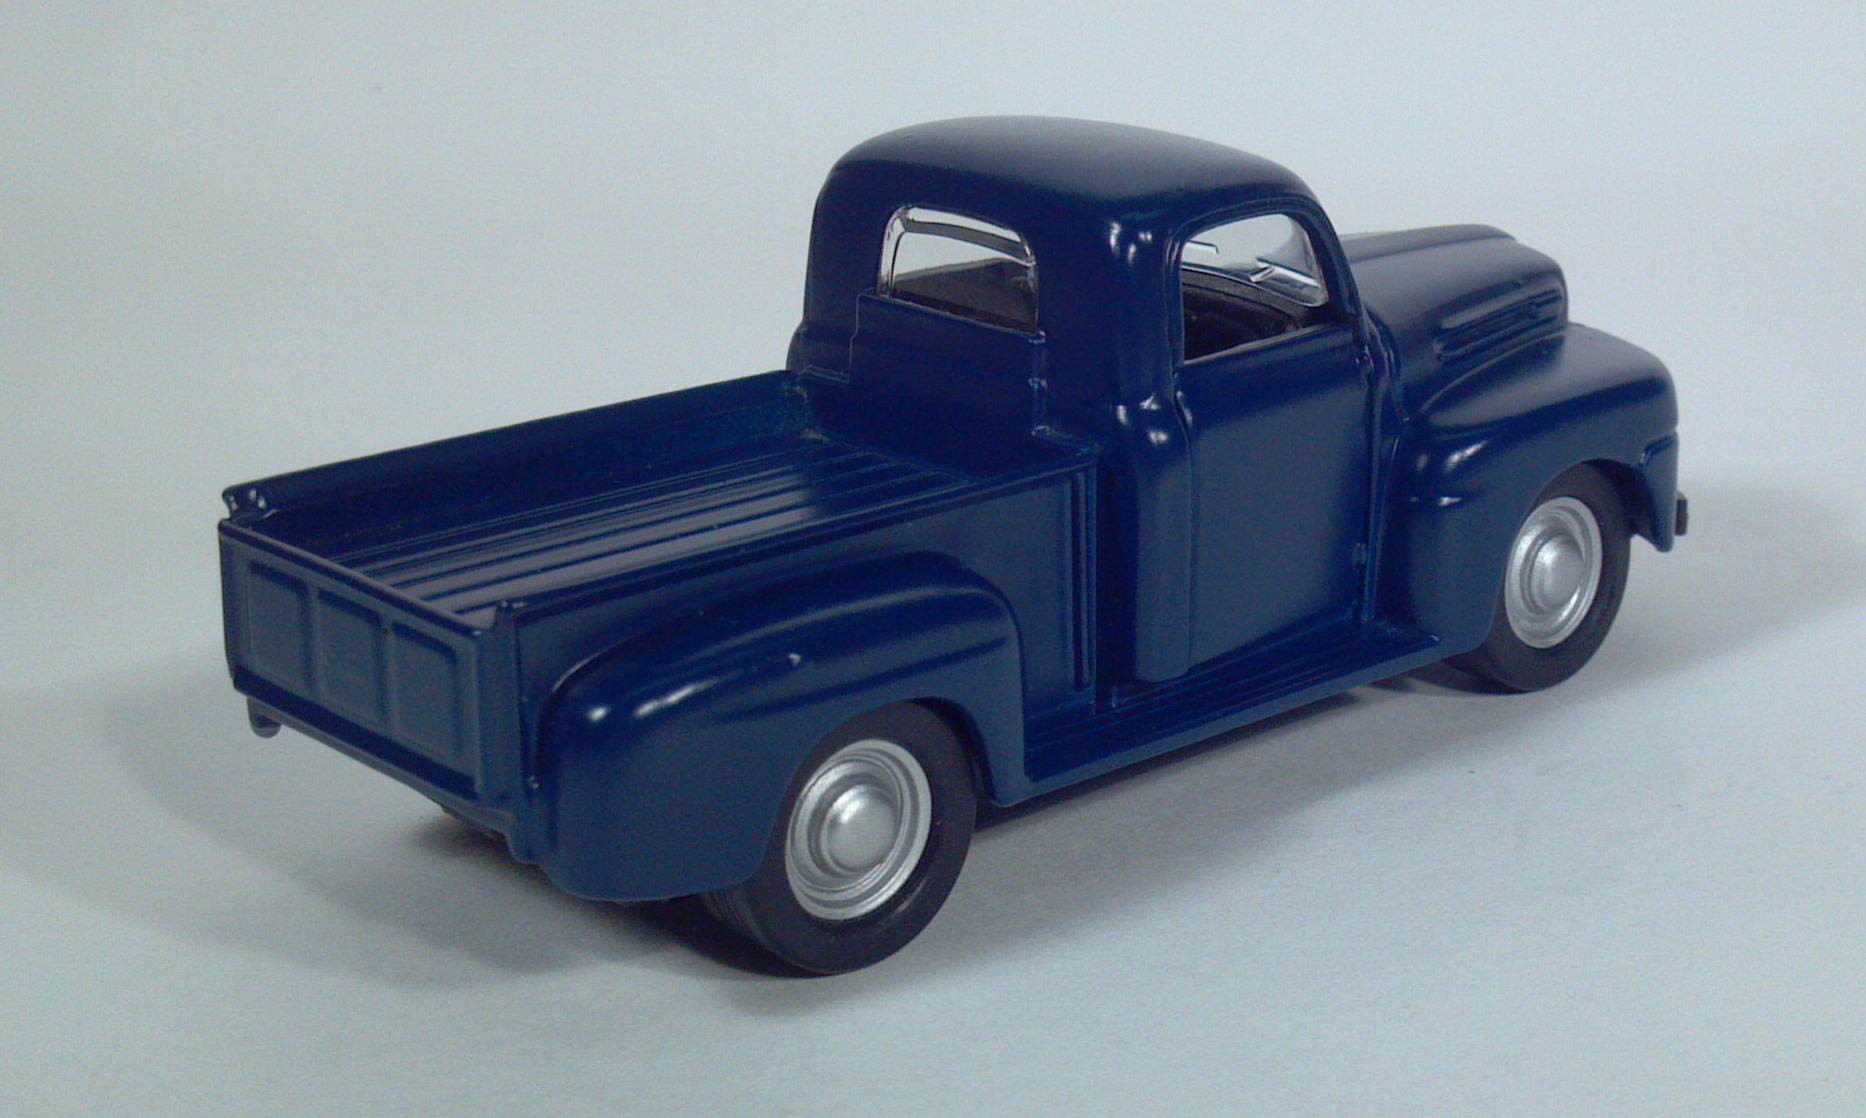 Maisto 1948 1949 1950 Ford F1 F2 Pickup Truck Diecast 136 Scale Model Toy